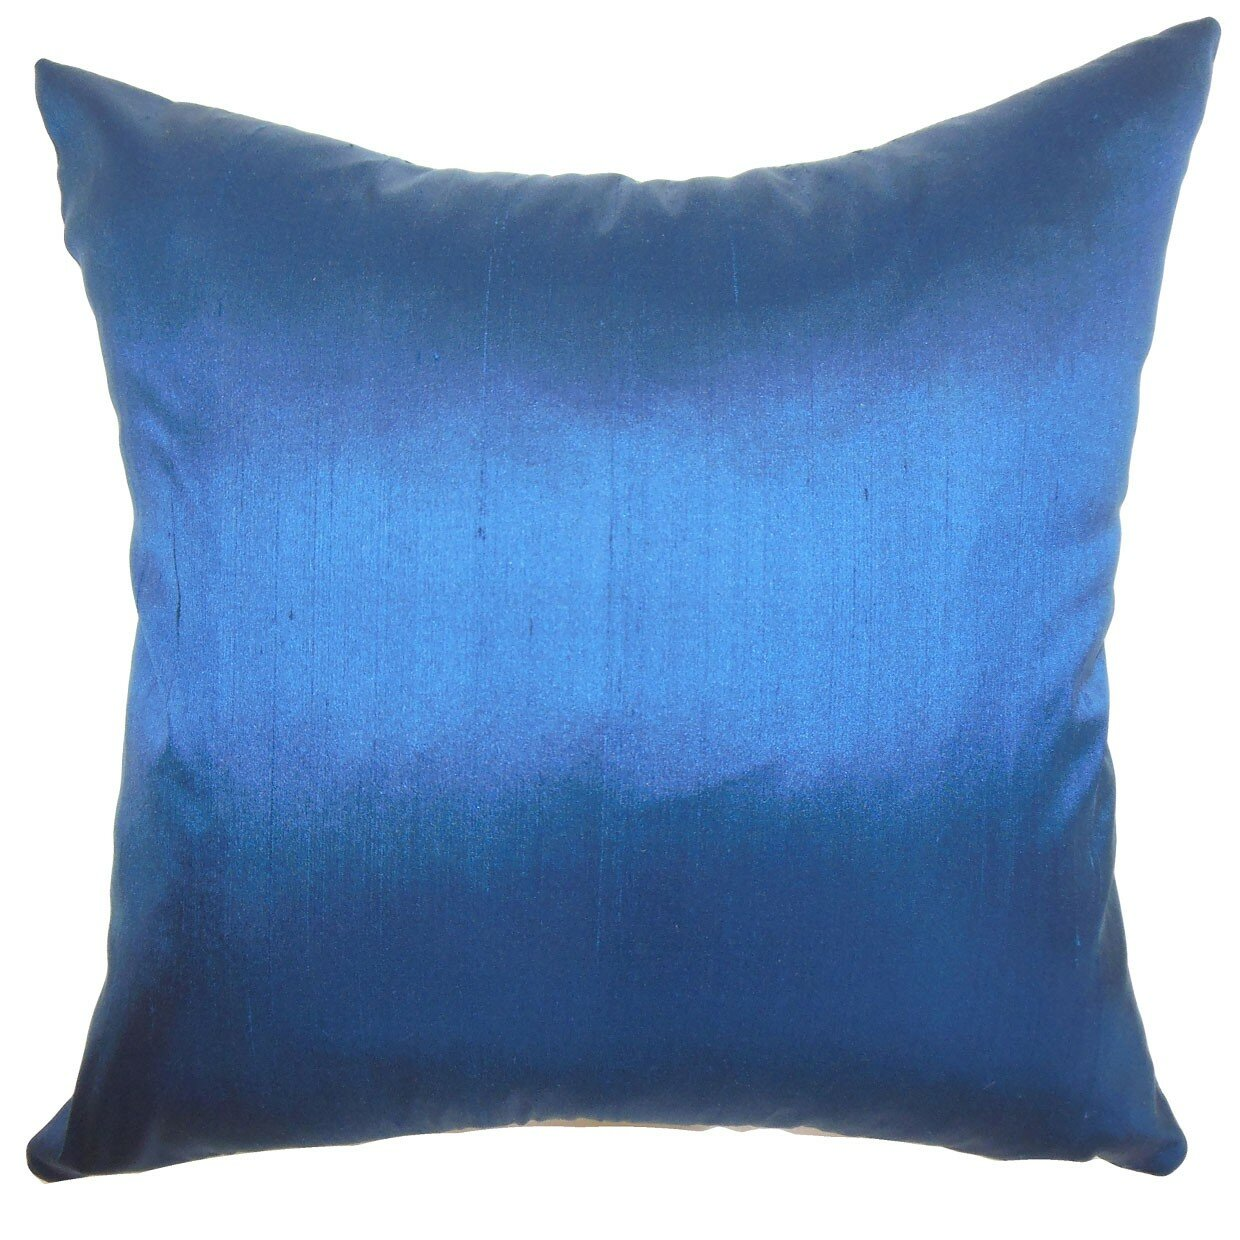 Wayfair Blue Decorative Pillows : House of Hampton Sheerness Plain Silk Throw Pillow & Reviews Wayfair